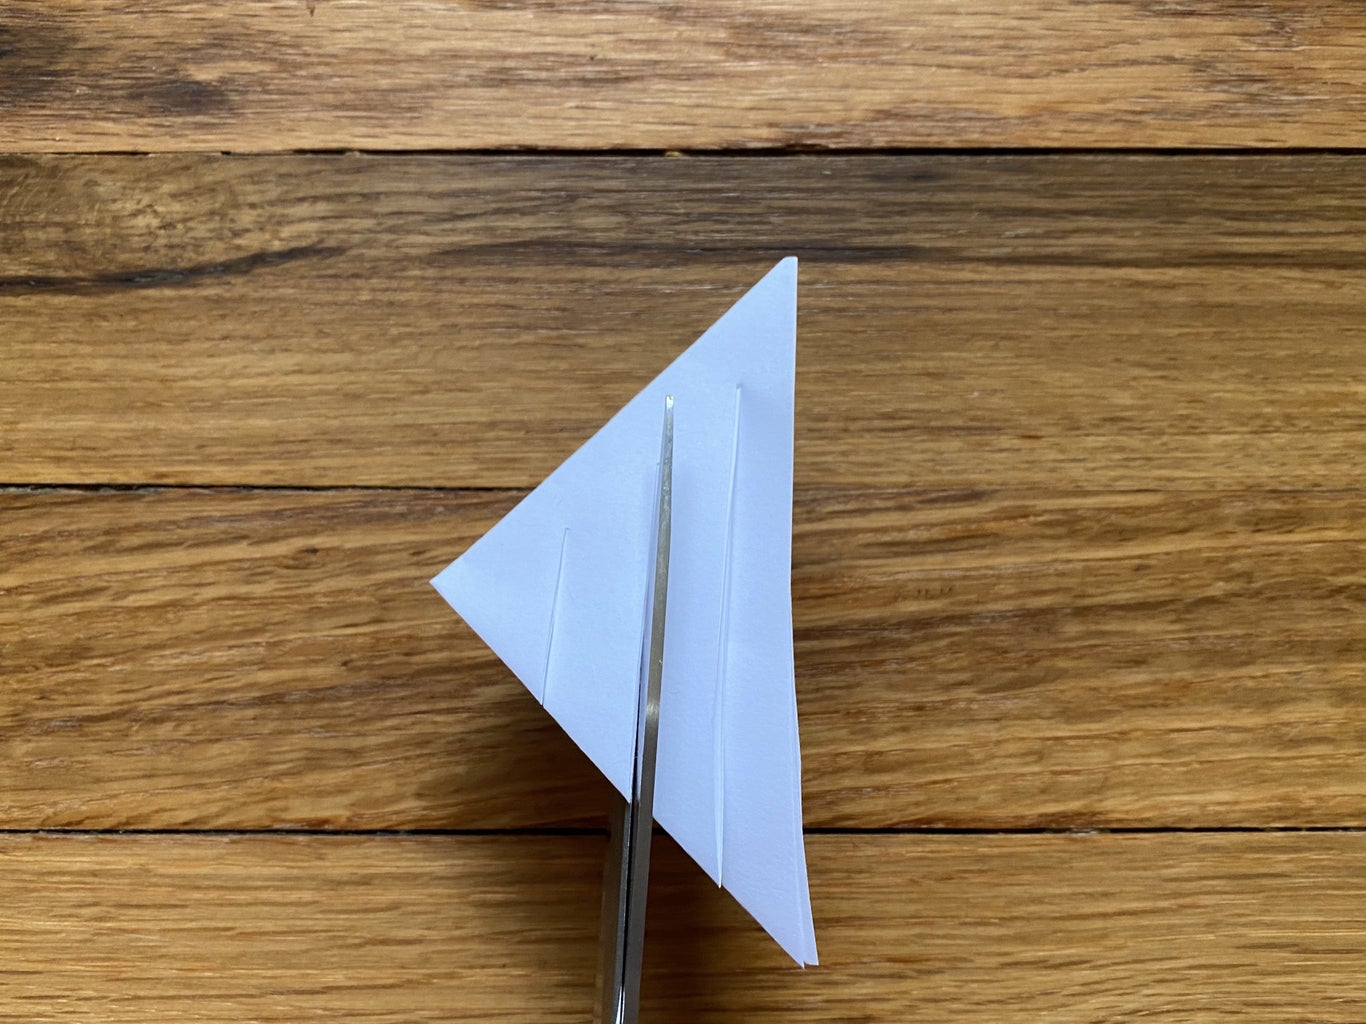 Make Three Evenly-Spaced Cuts in the Triangle.